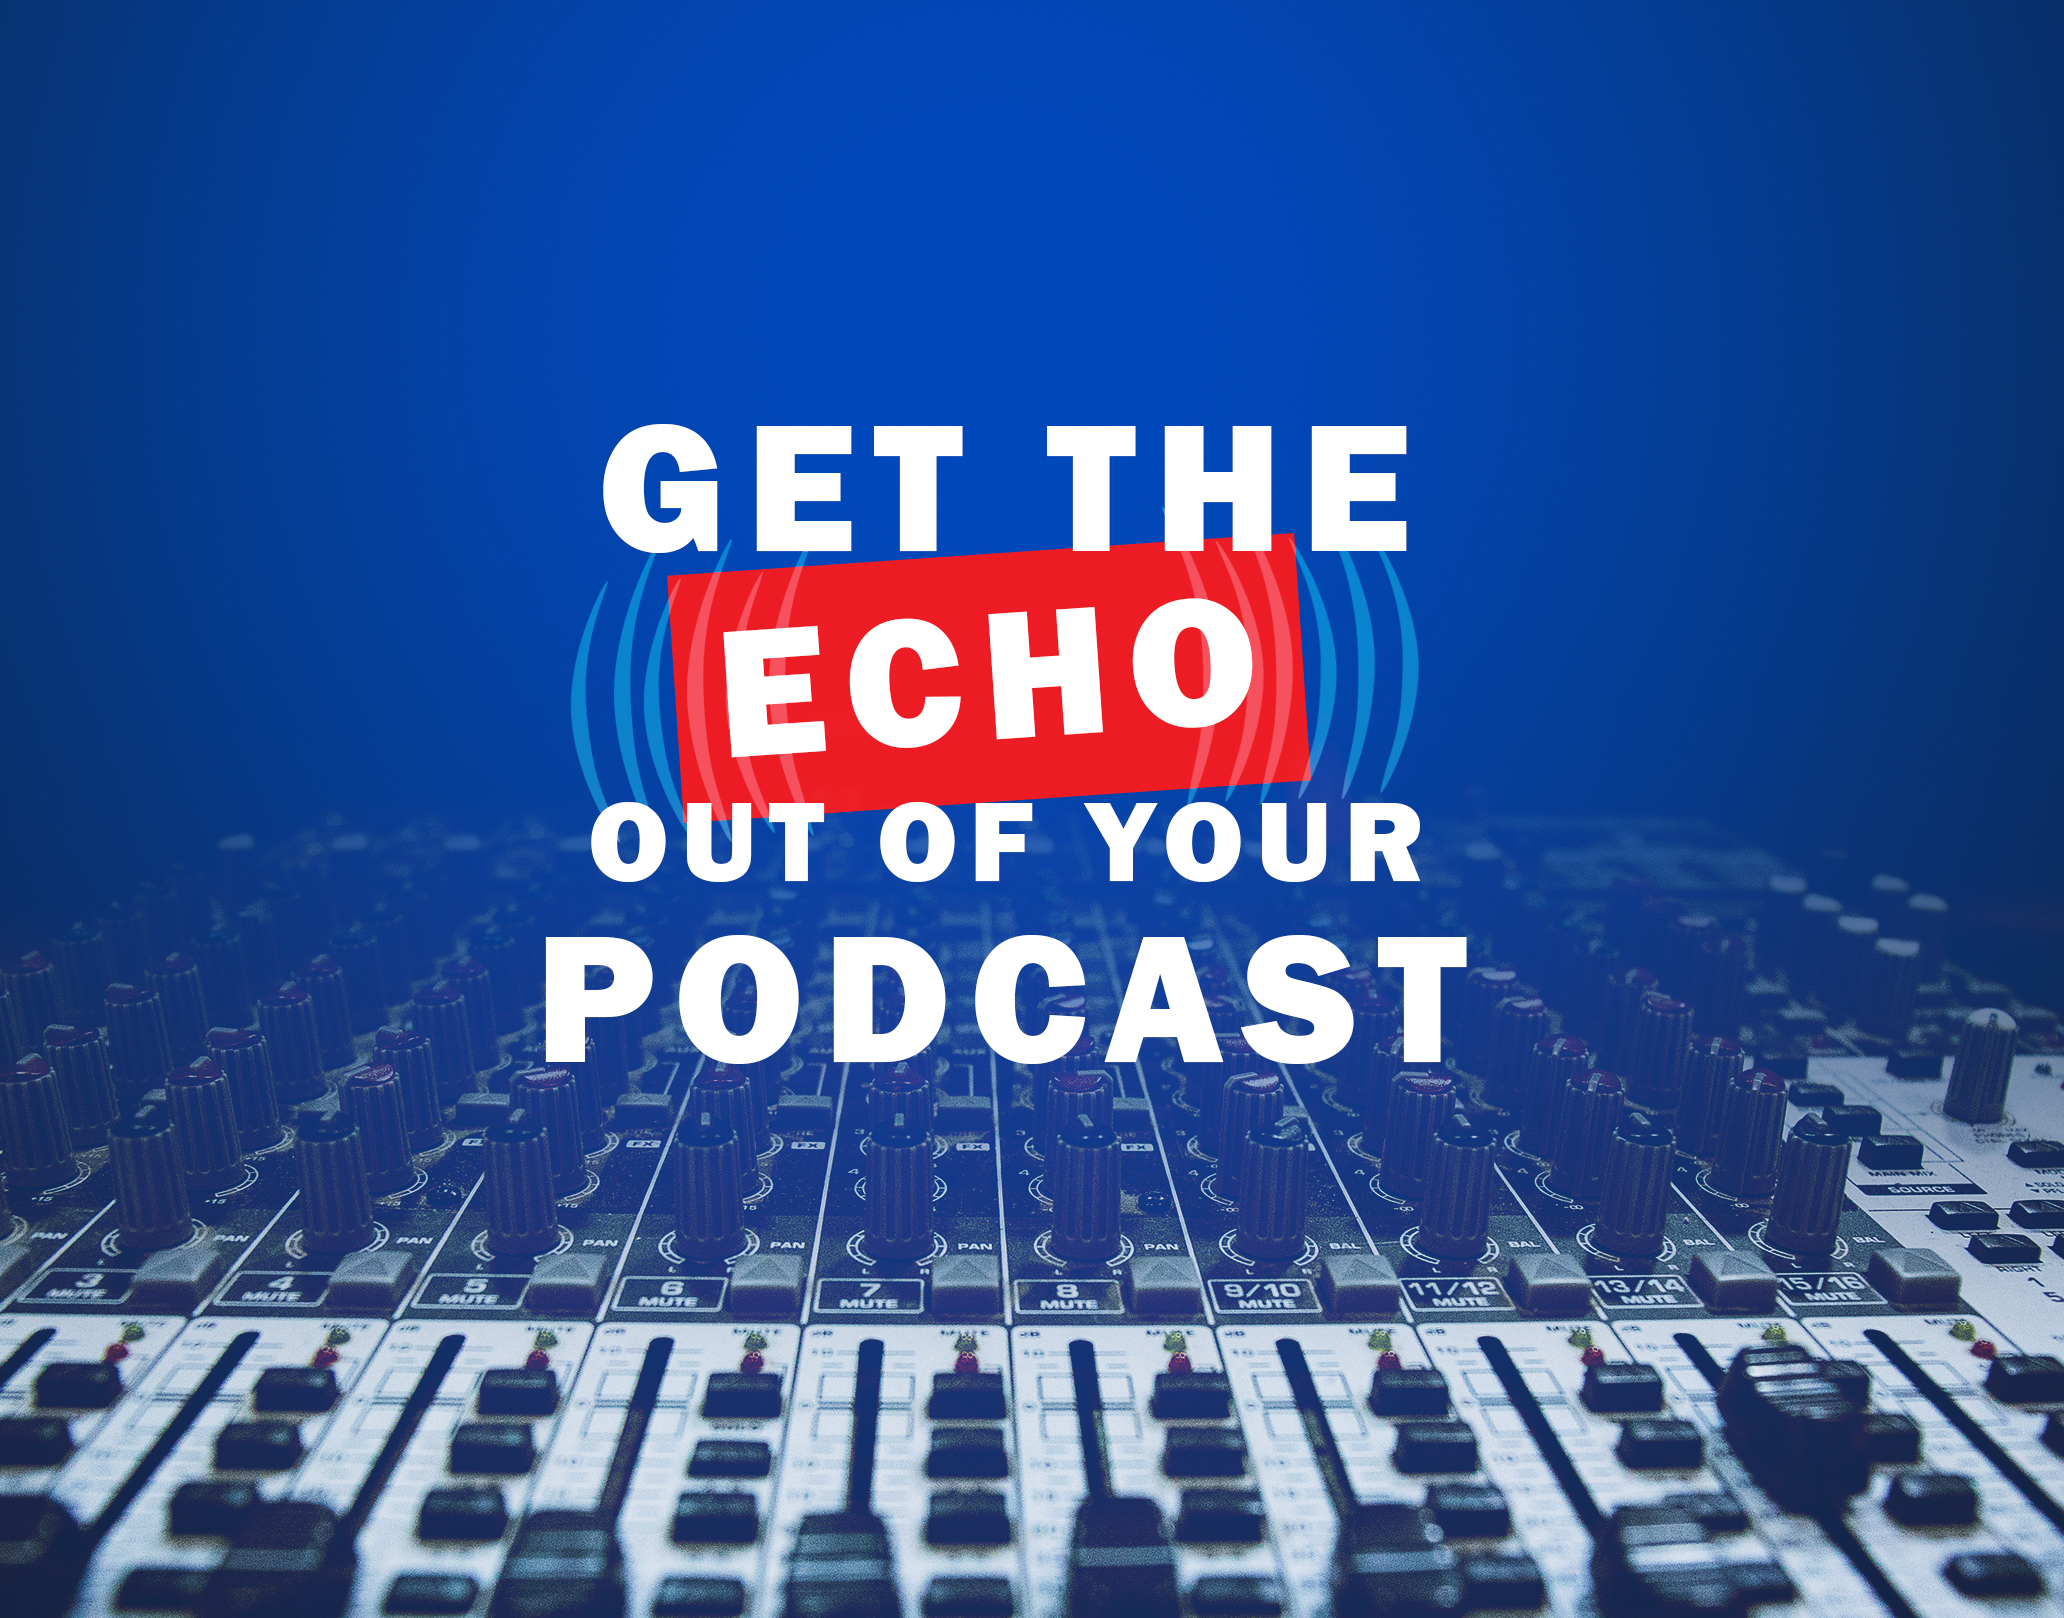 Get the Echo Out of Your Podcast